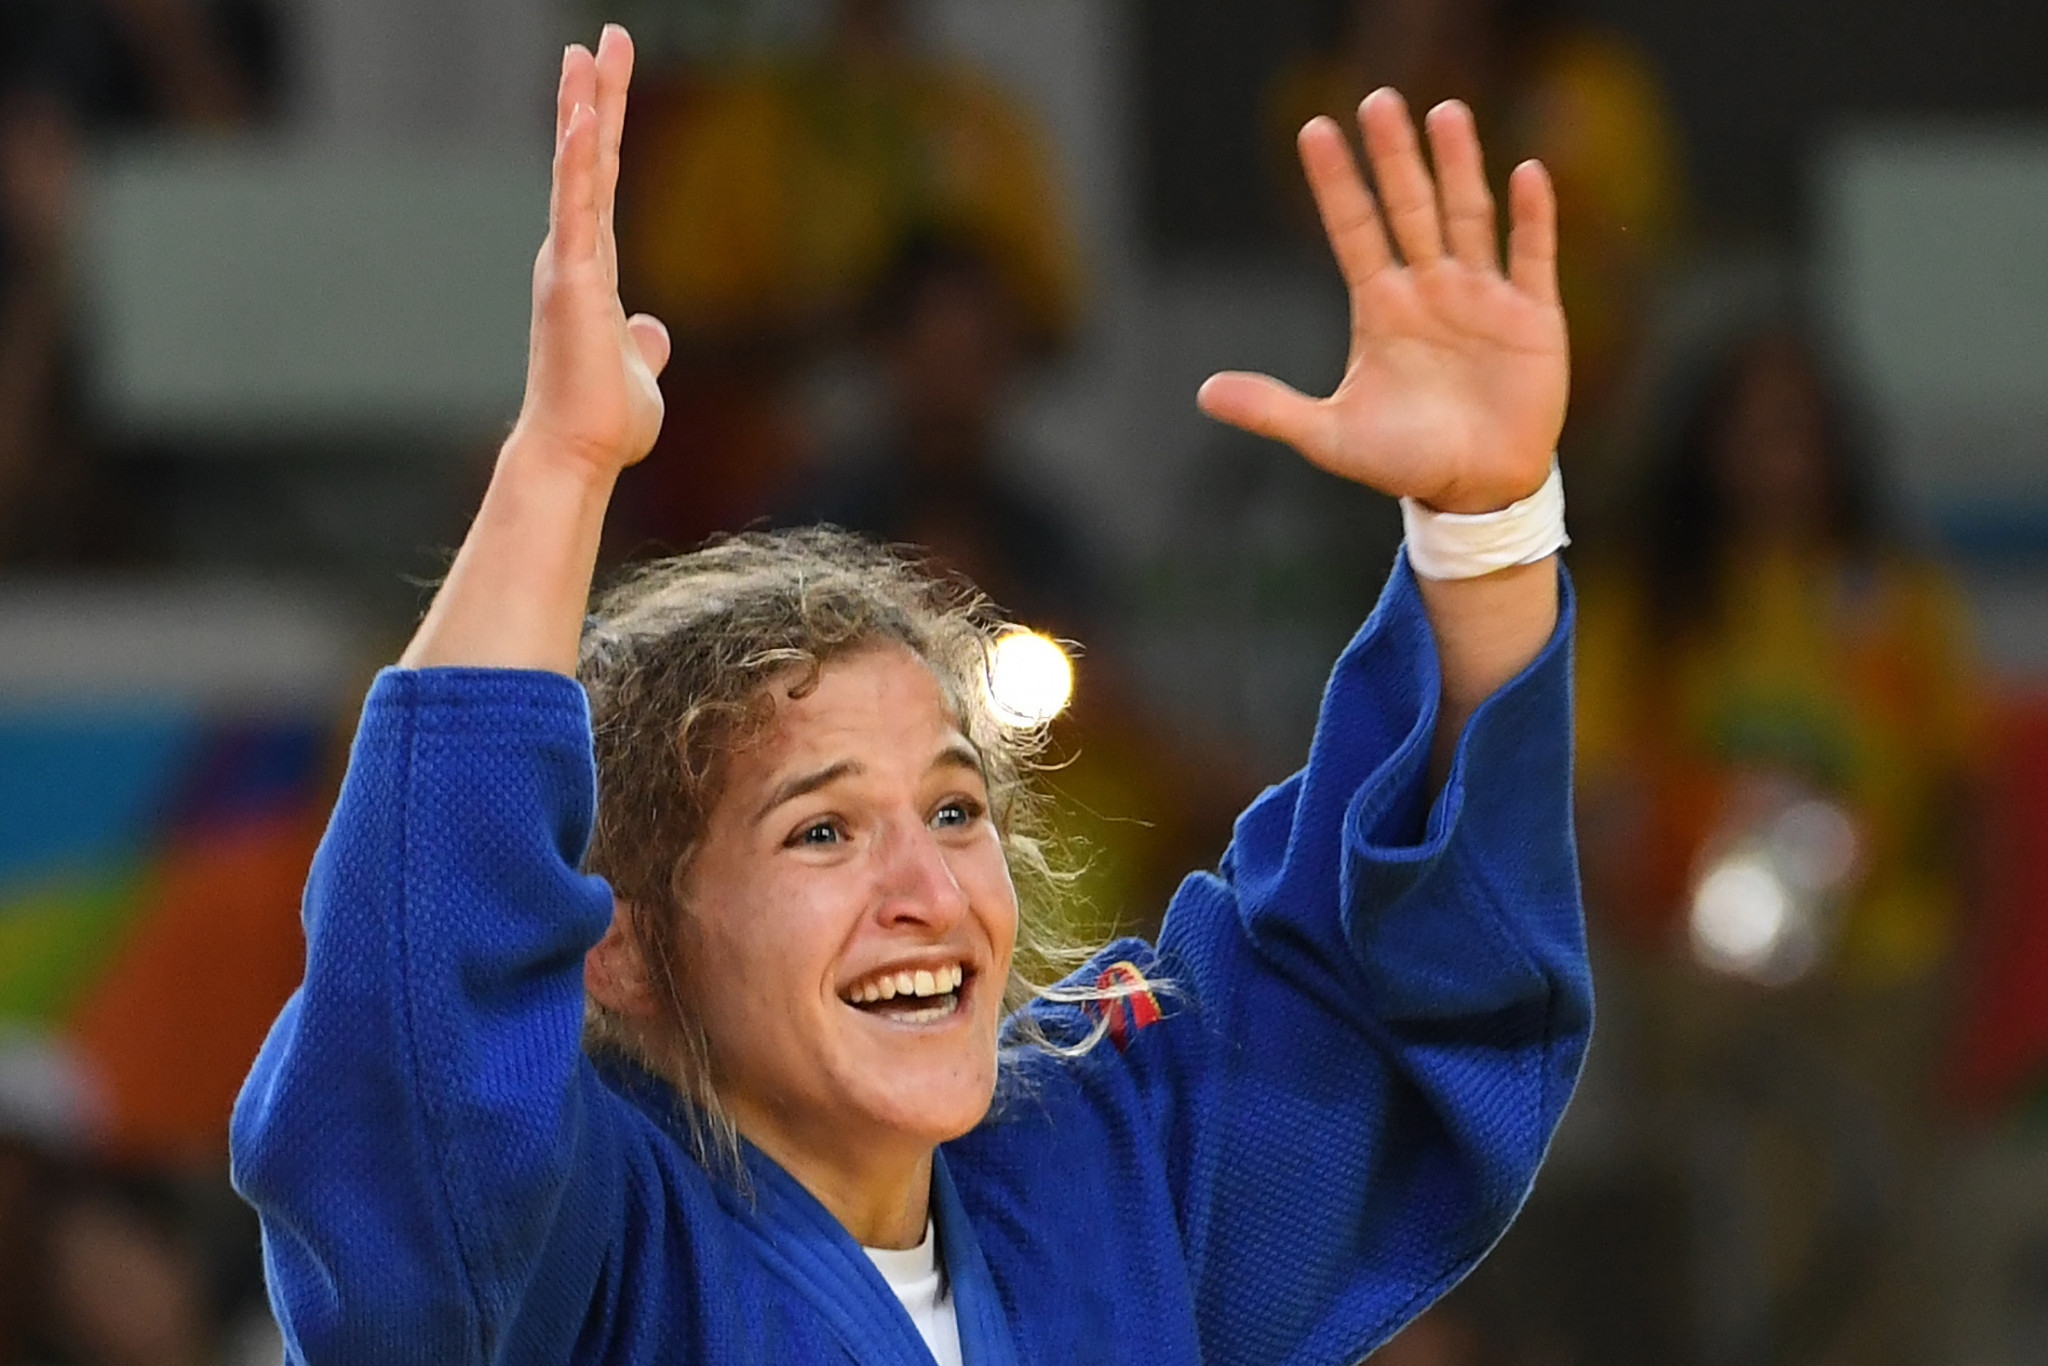 Olympic and world champions descend on Abu Dhabi for latest IJF Grand Slam